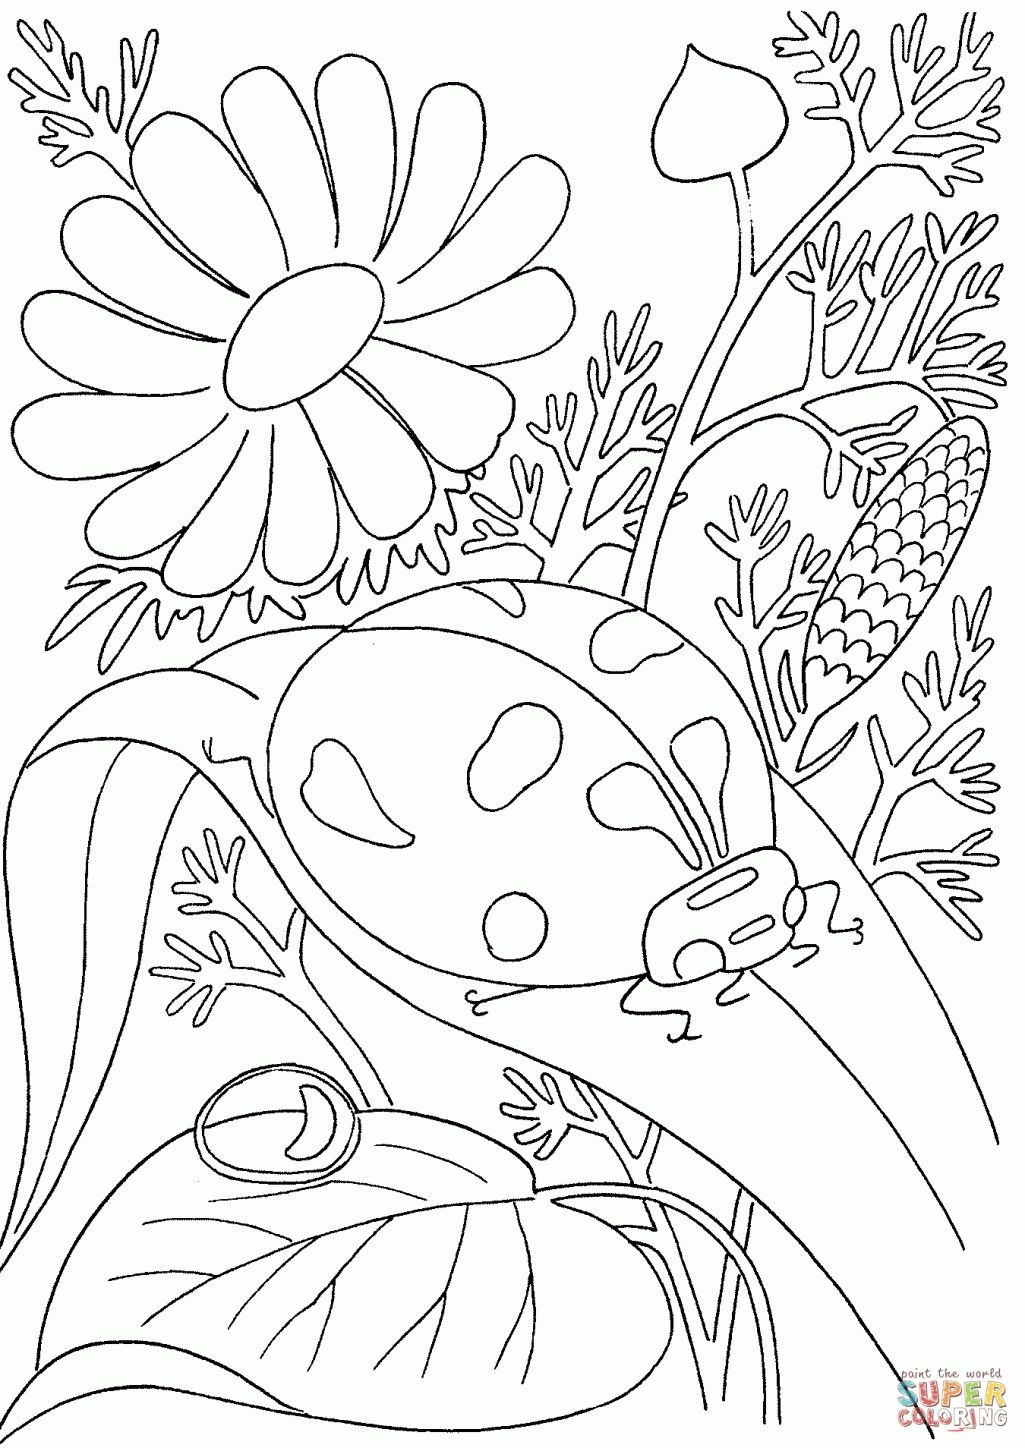 Baseball Adult Coloring Pages Free Printable Flower